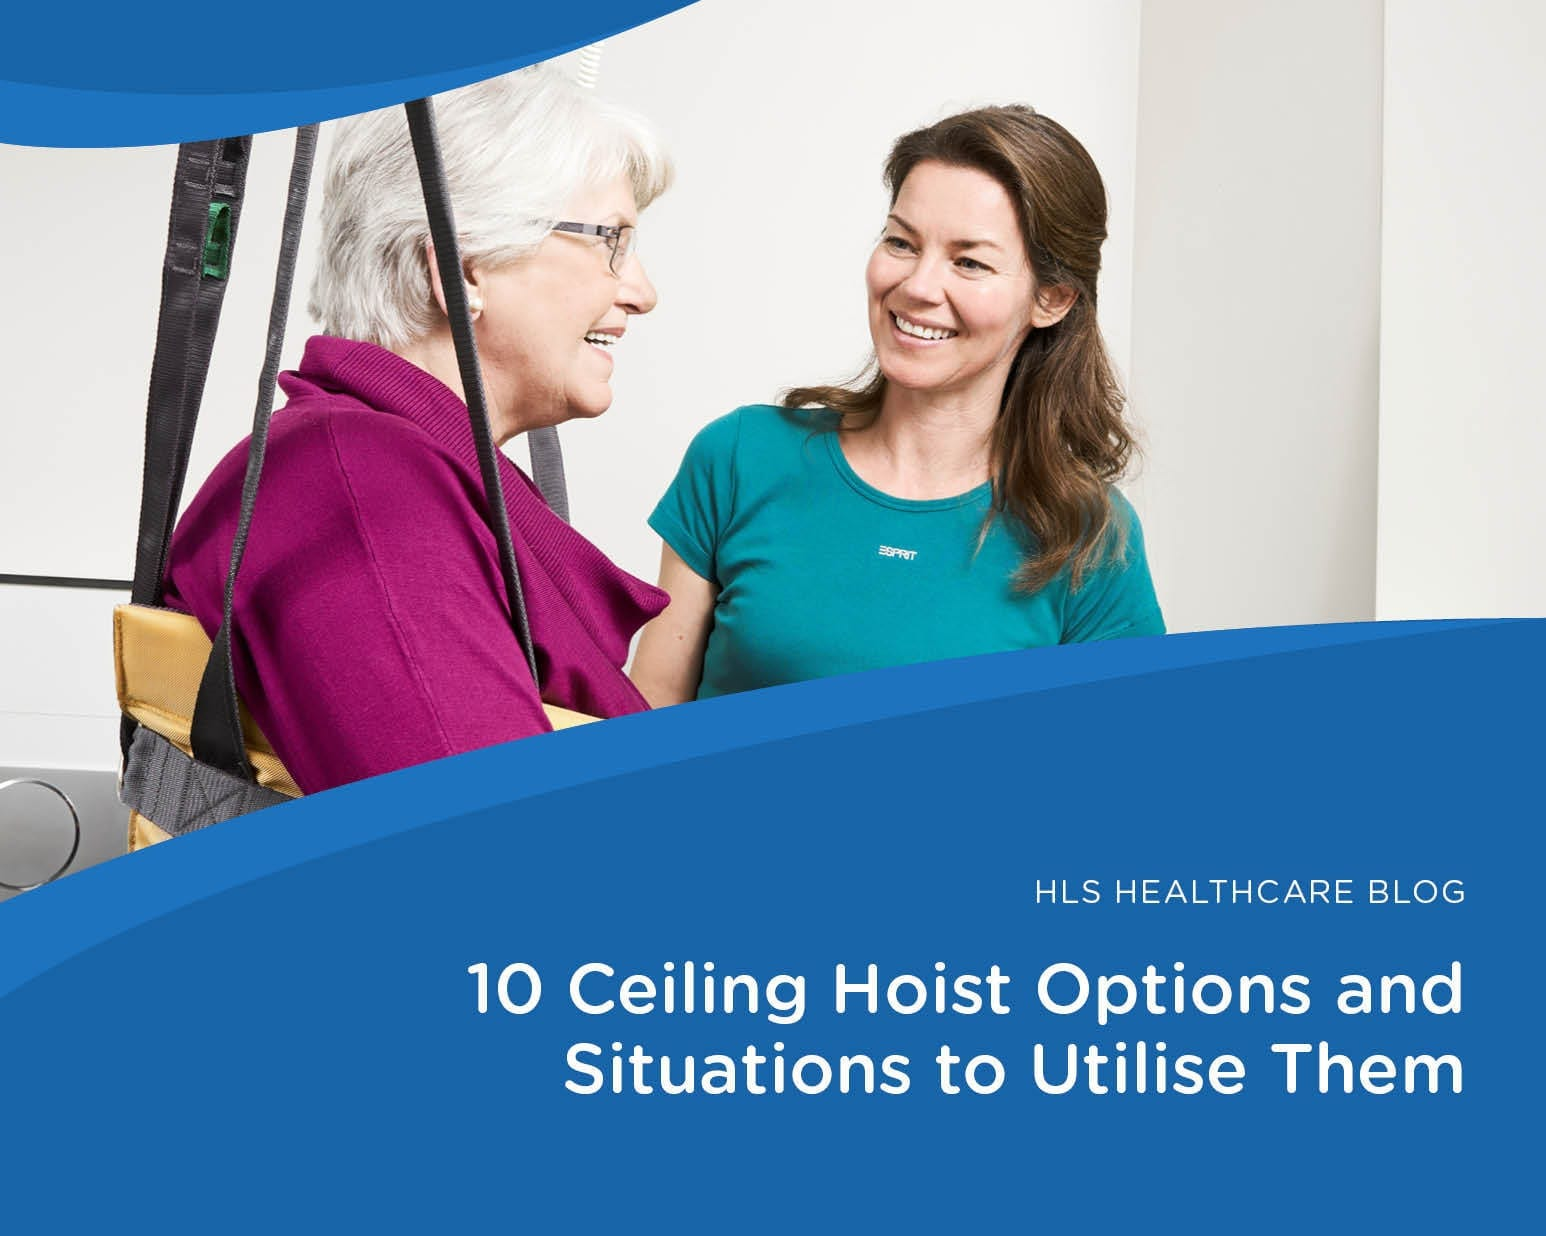 10 Ceiling Hoist Options and Situations to Utilise Them